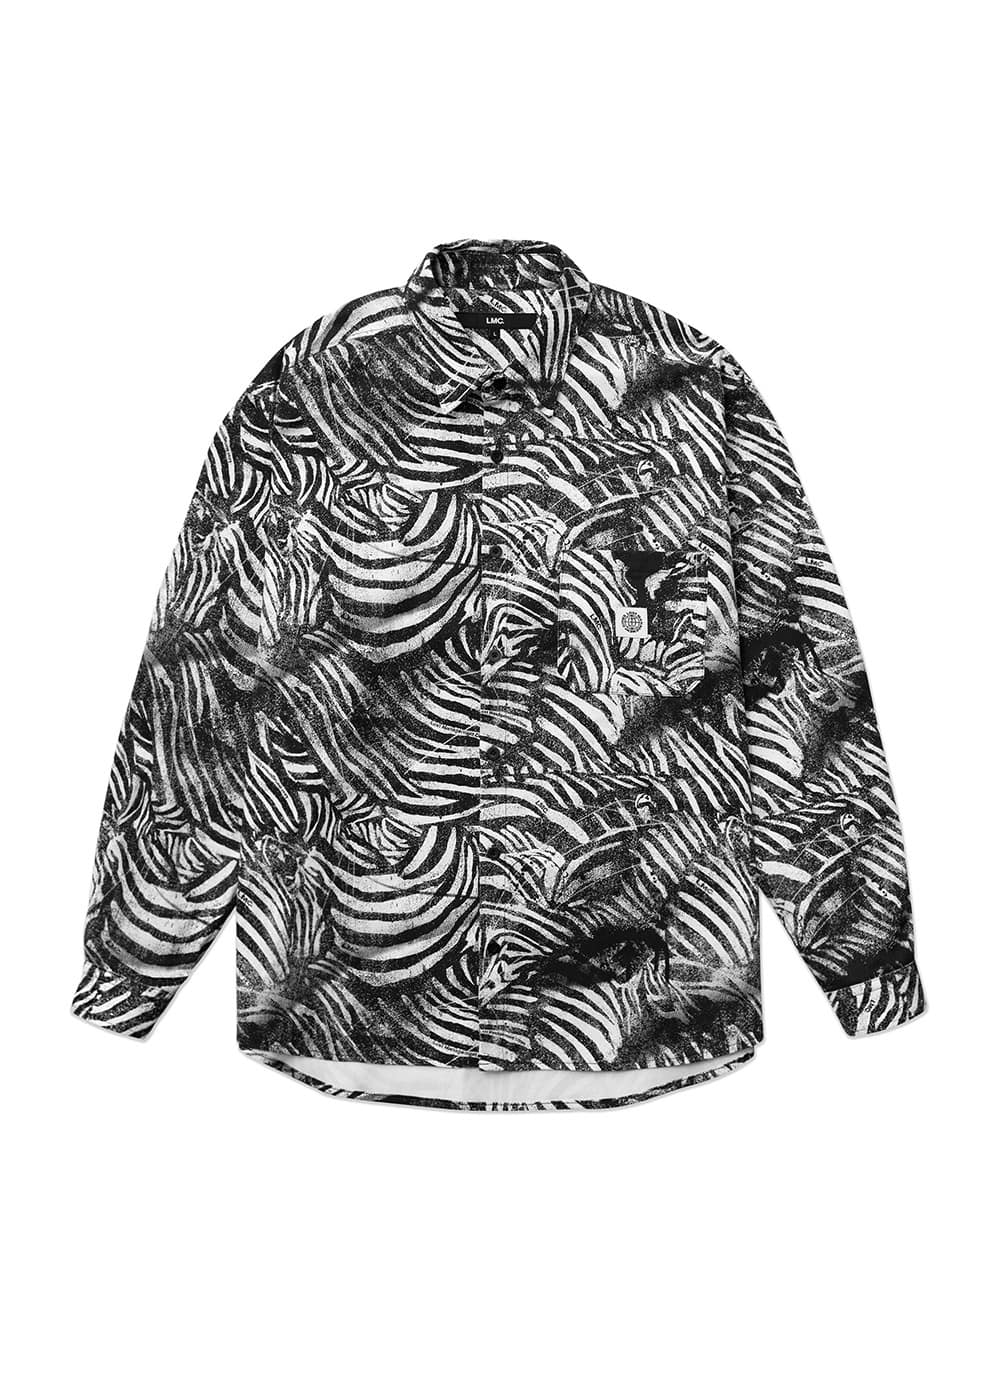 LMC ZEBRA AIRBRUSH SHIRT off white